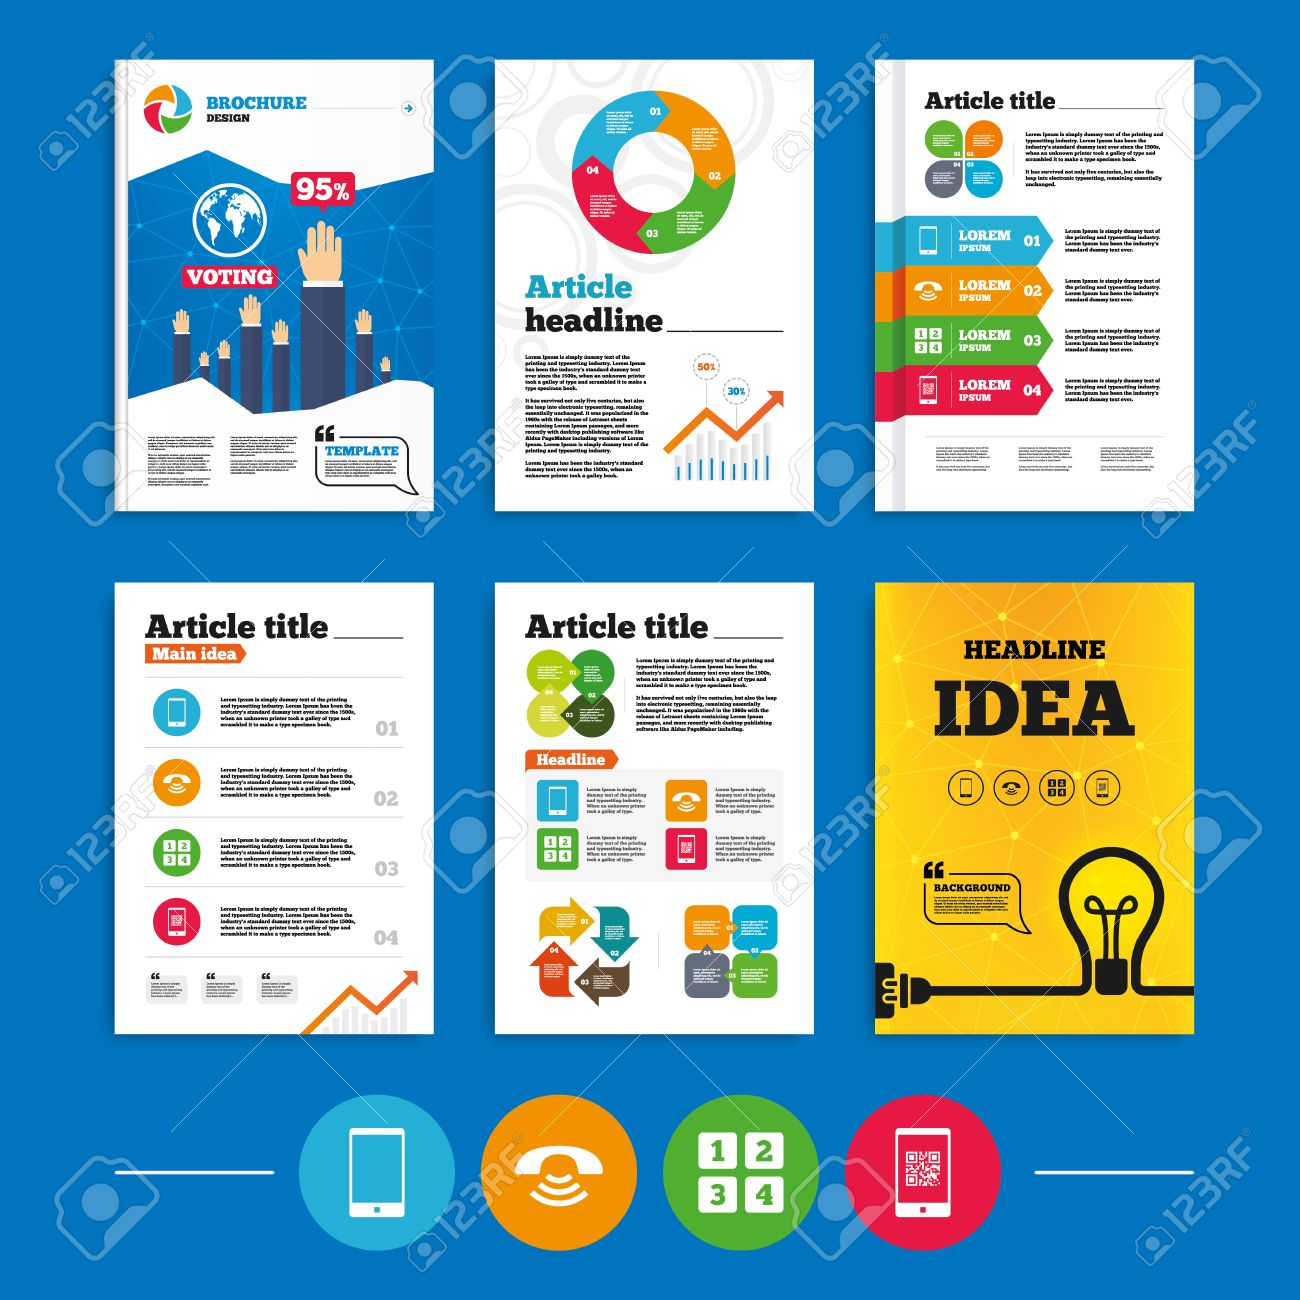 Brochure or flyers design phone icons smartphone with qr code brochure or flyers design phone icons smartphone with qr code sign call center biocorpaavc Images